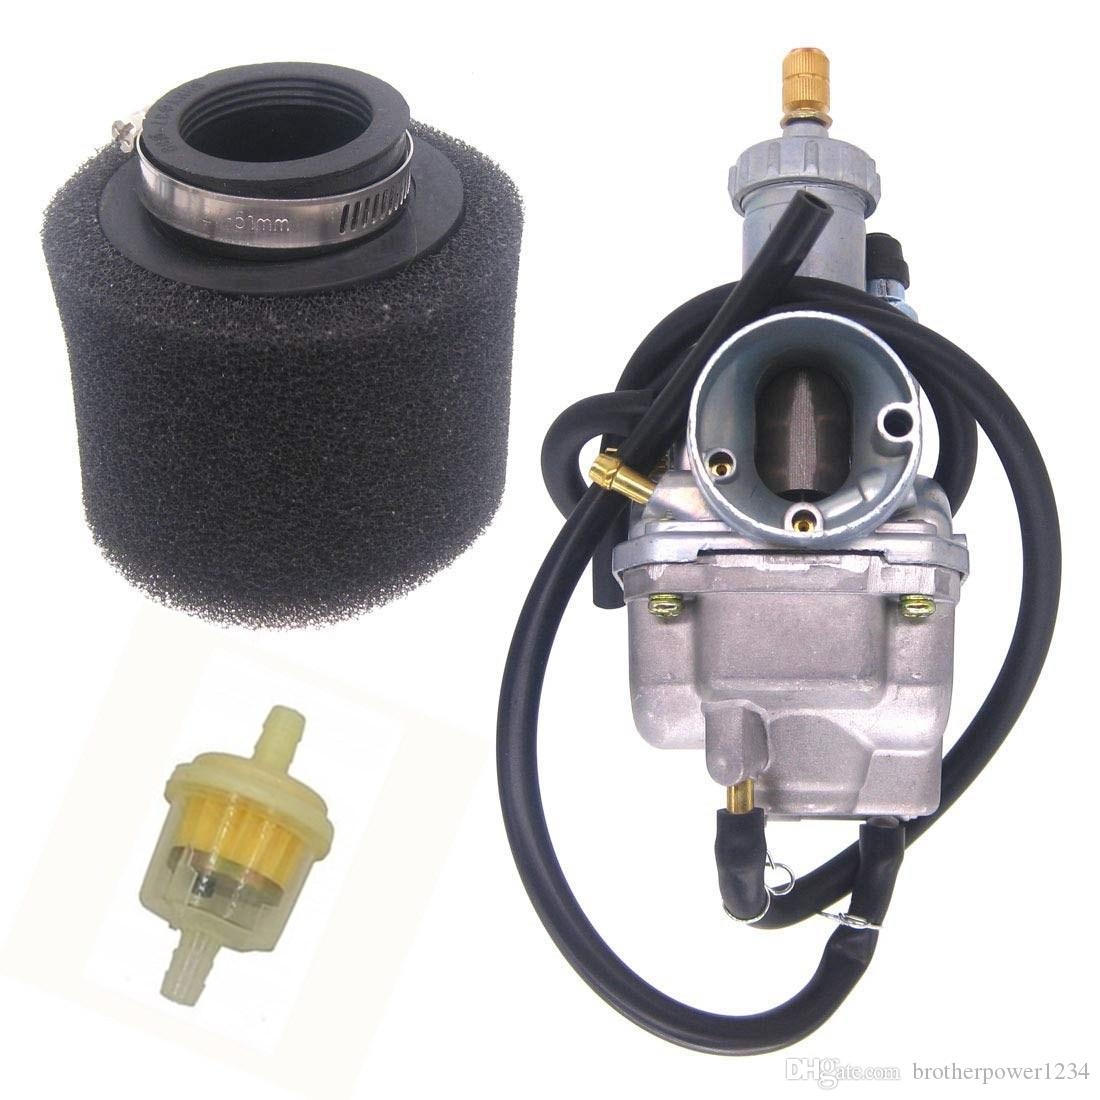 2018 Carburetor With Air Filter Fuel Filter For KAWASAKI Bayou 220 KLF220A  KLF220 Replace 15003 1080 From Brotherpower1234, $25.12   DHgate.Com